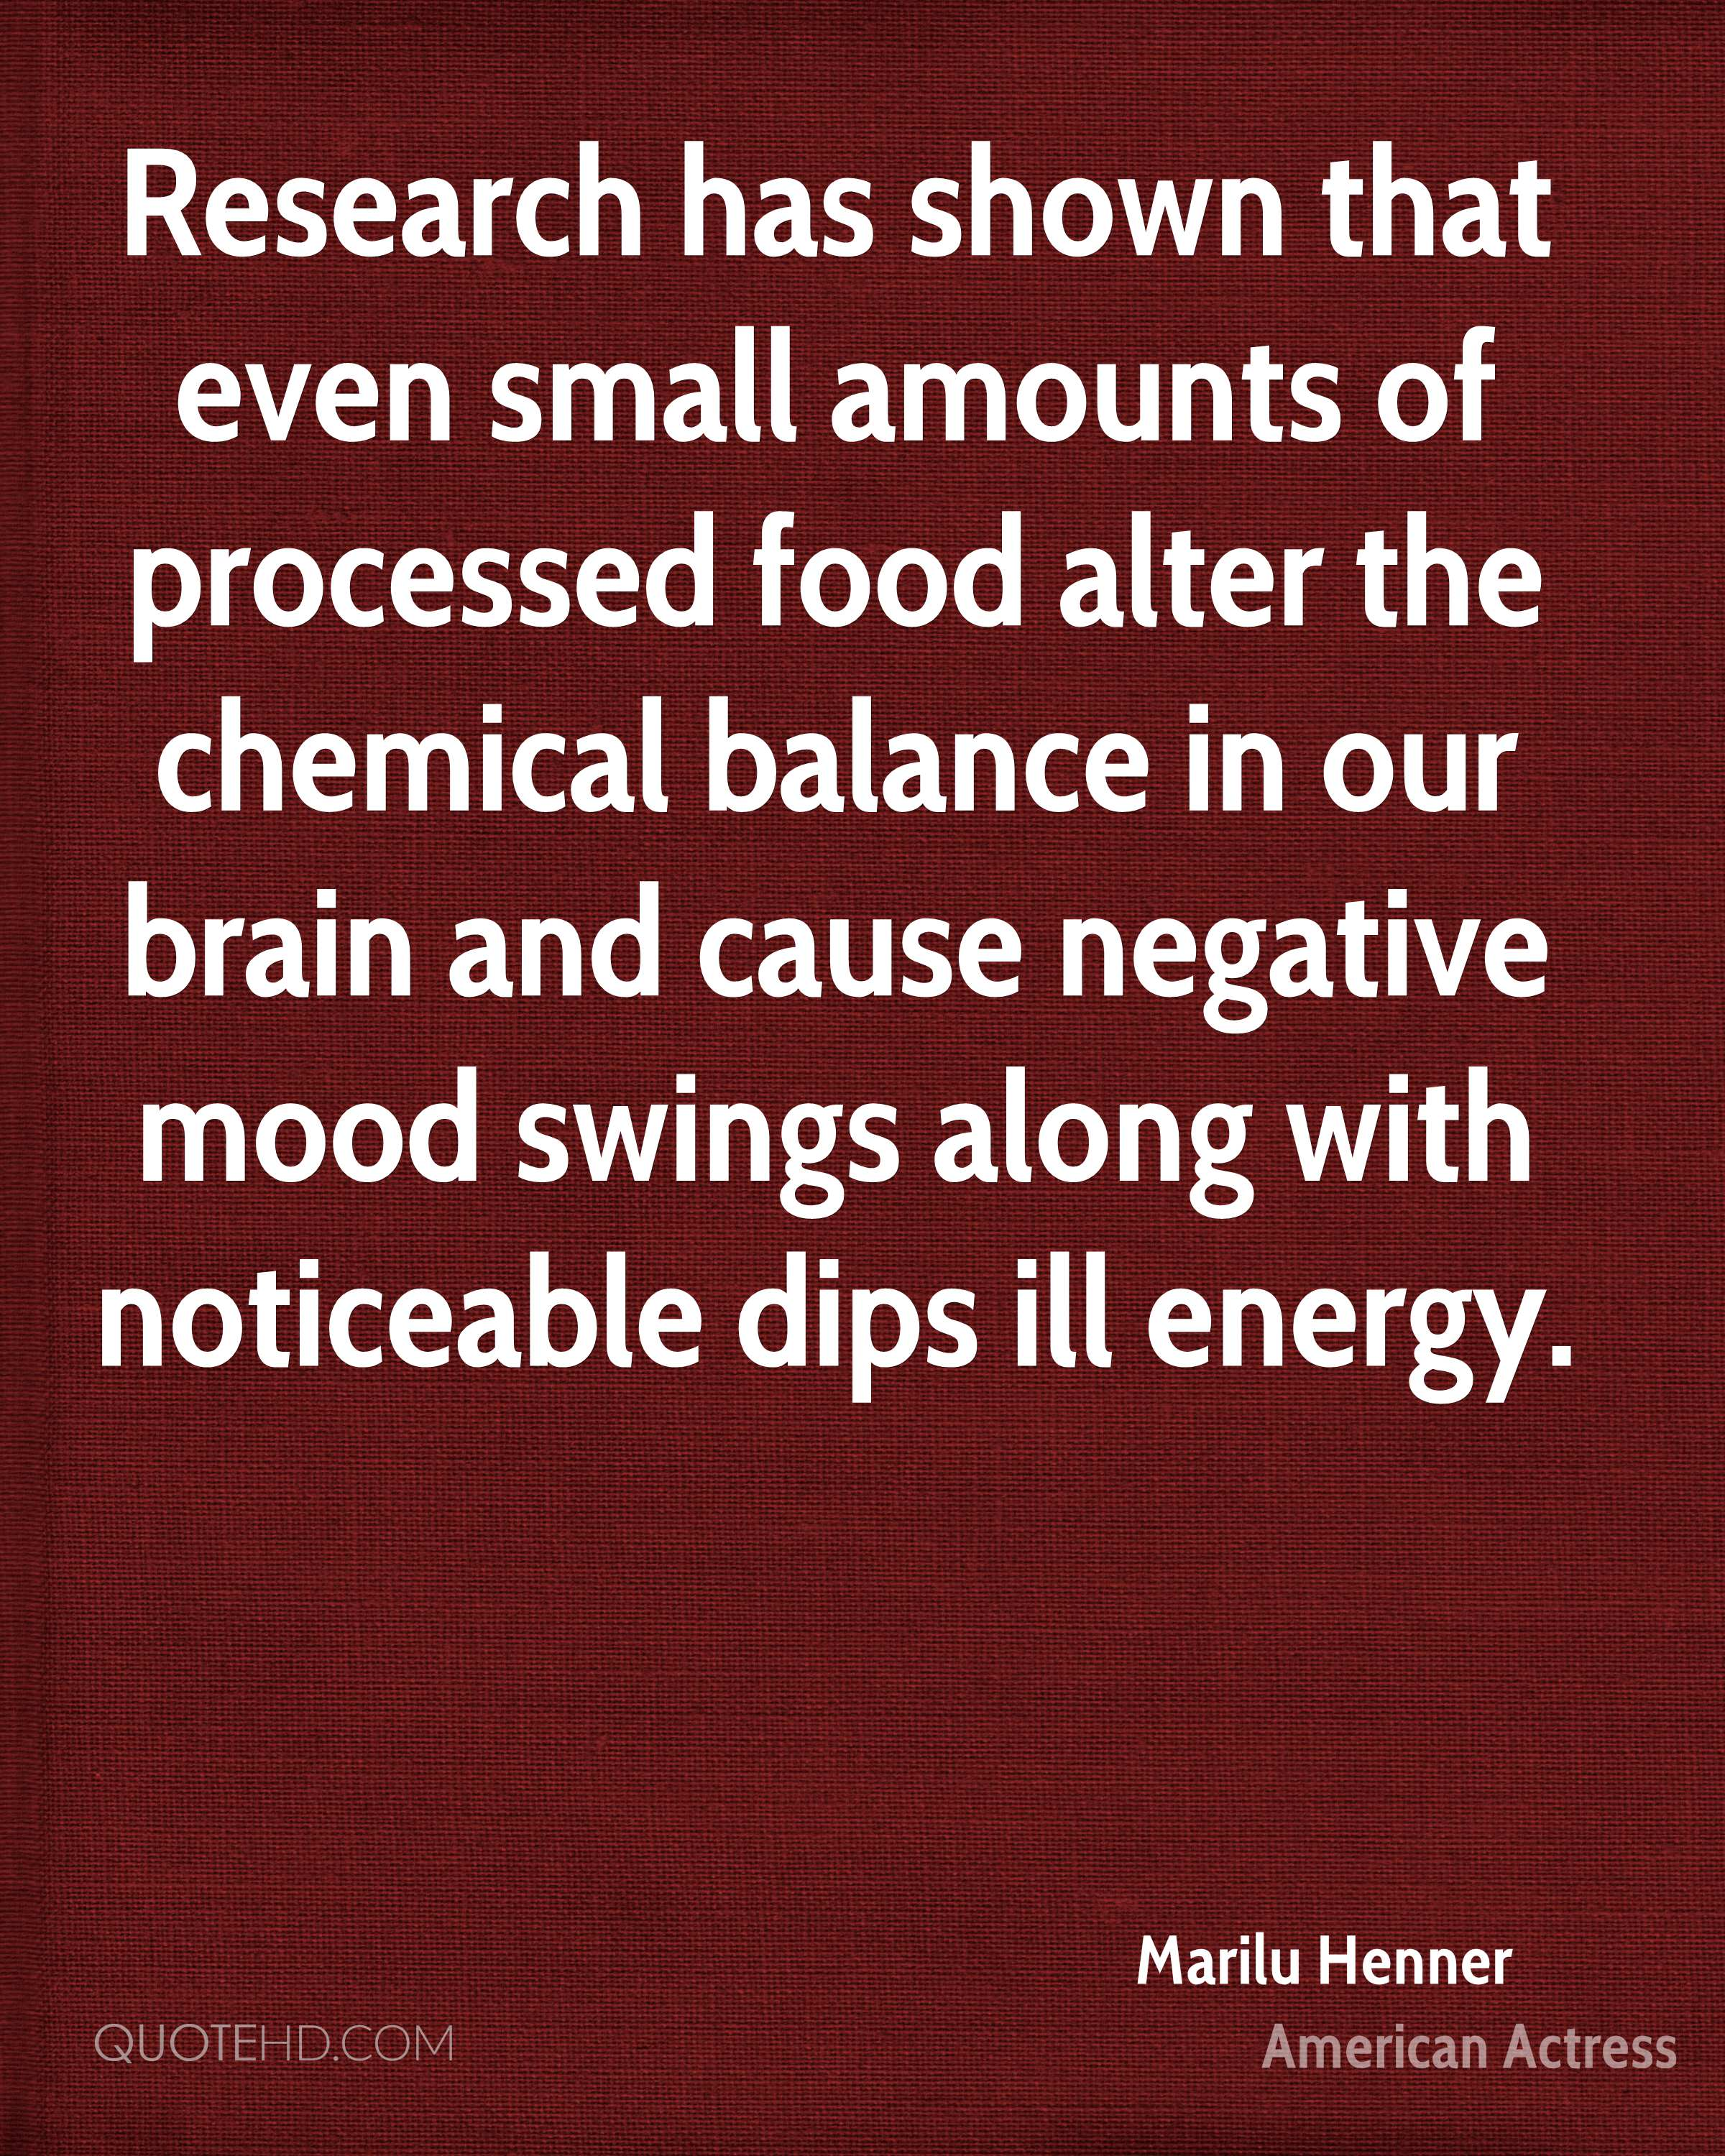 Research has shown that even small amounts of processed food alter the chemical balance in our brain and cause negative mood swings along with noticeable dips ill energy.